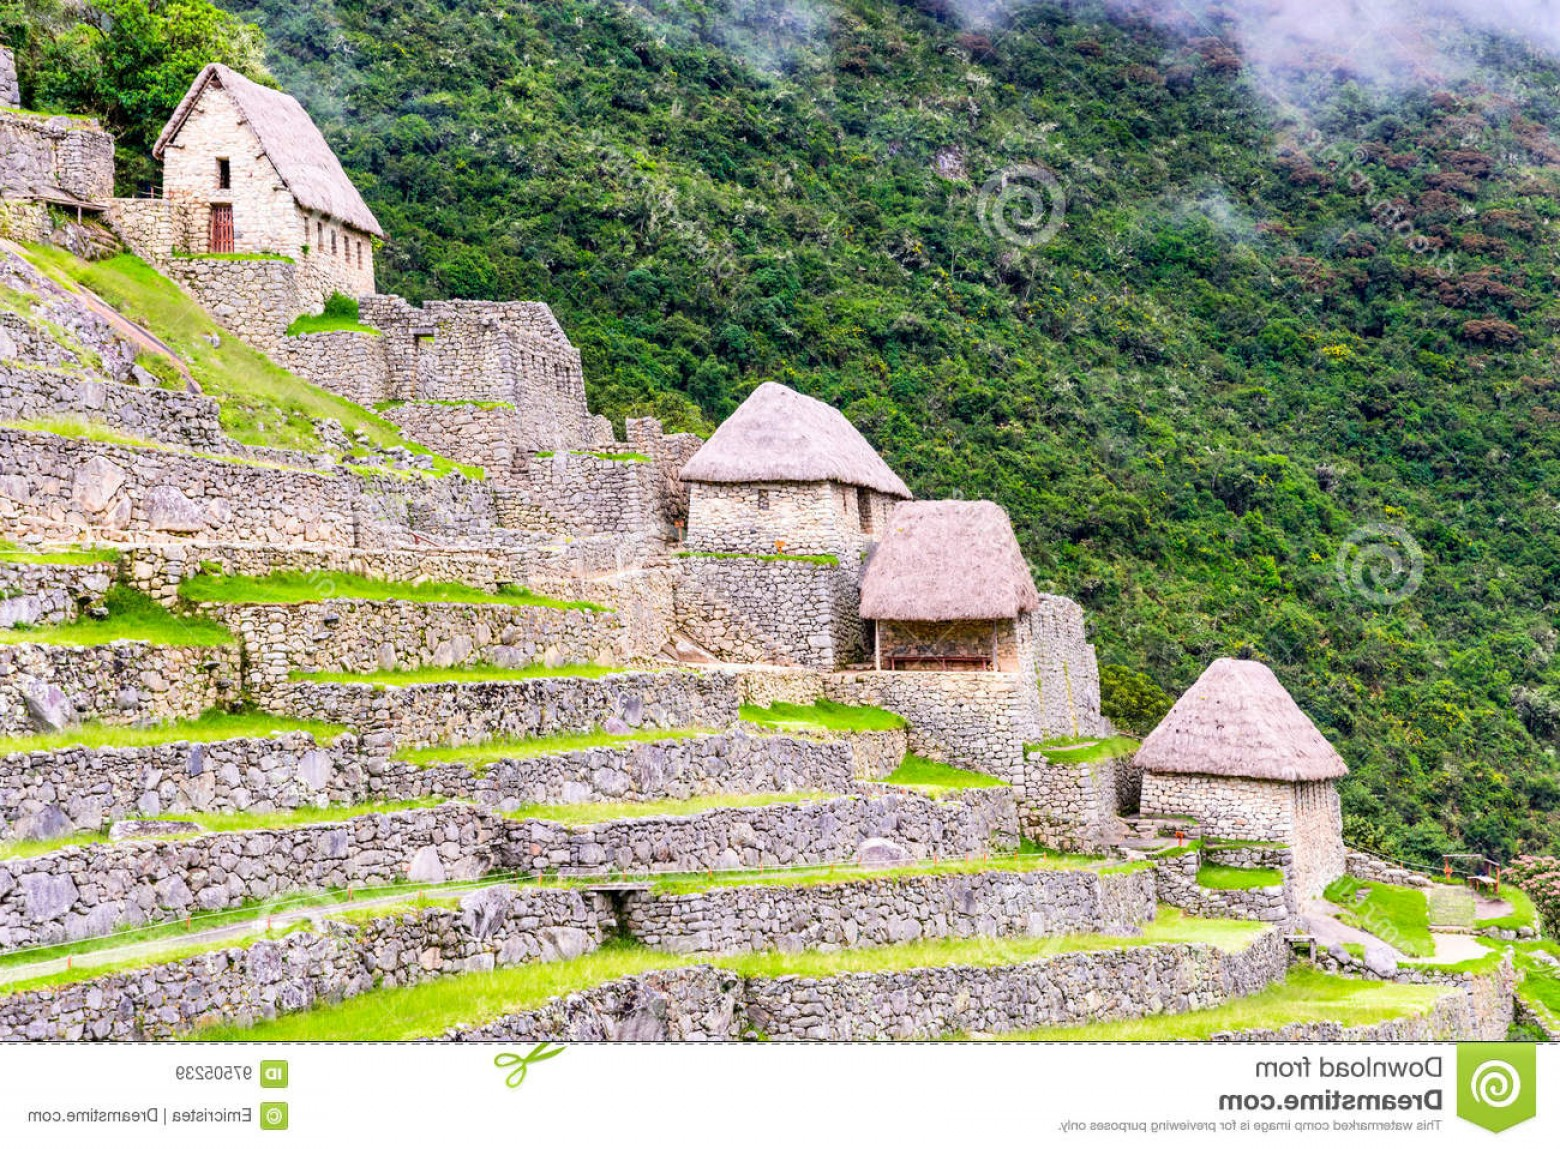 Vector South America Ancient Ruins: Stock Photo Machu Picchu Cusco Peru South America Ancient Ruins Houses Inca Empire City Sacred Valley Amazing Place Image